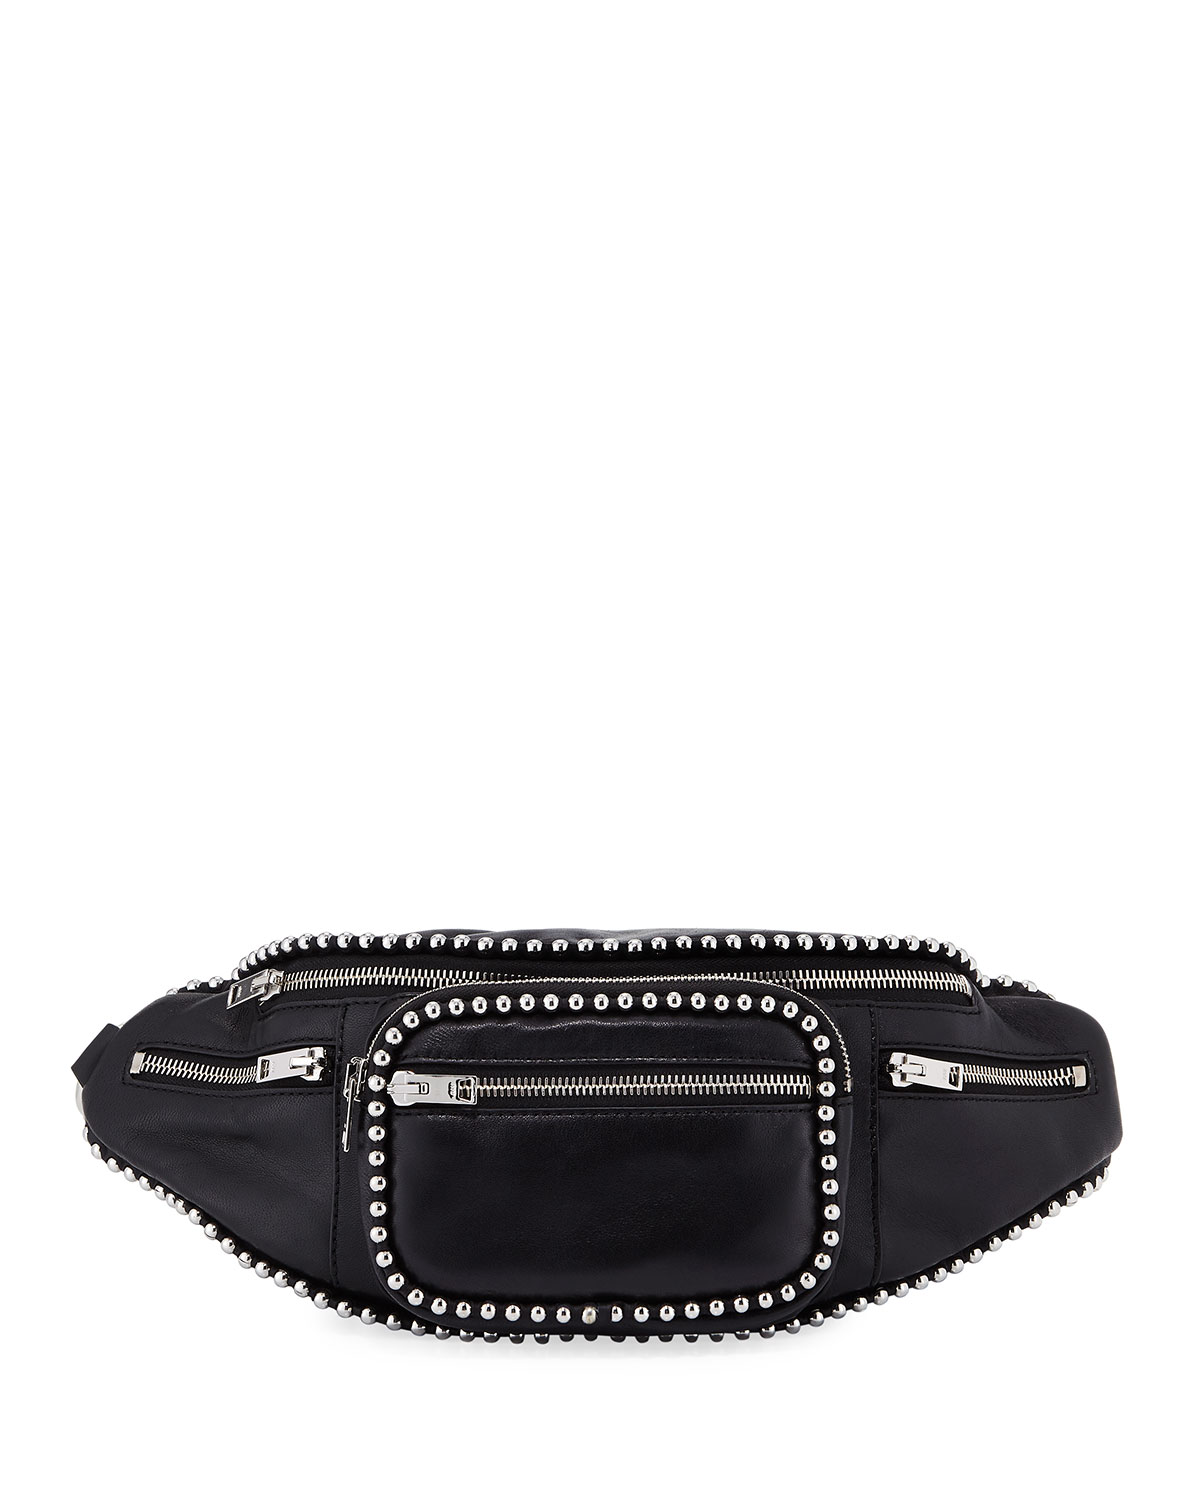 5262fcde089 Alexander Wang Attica Soft Leather Fanny Pack Bag with Stud Trim ...